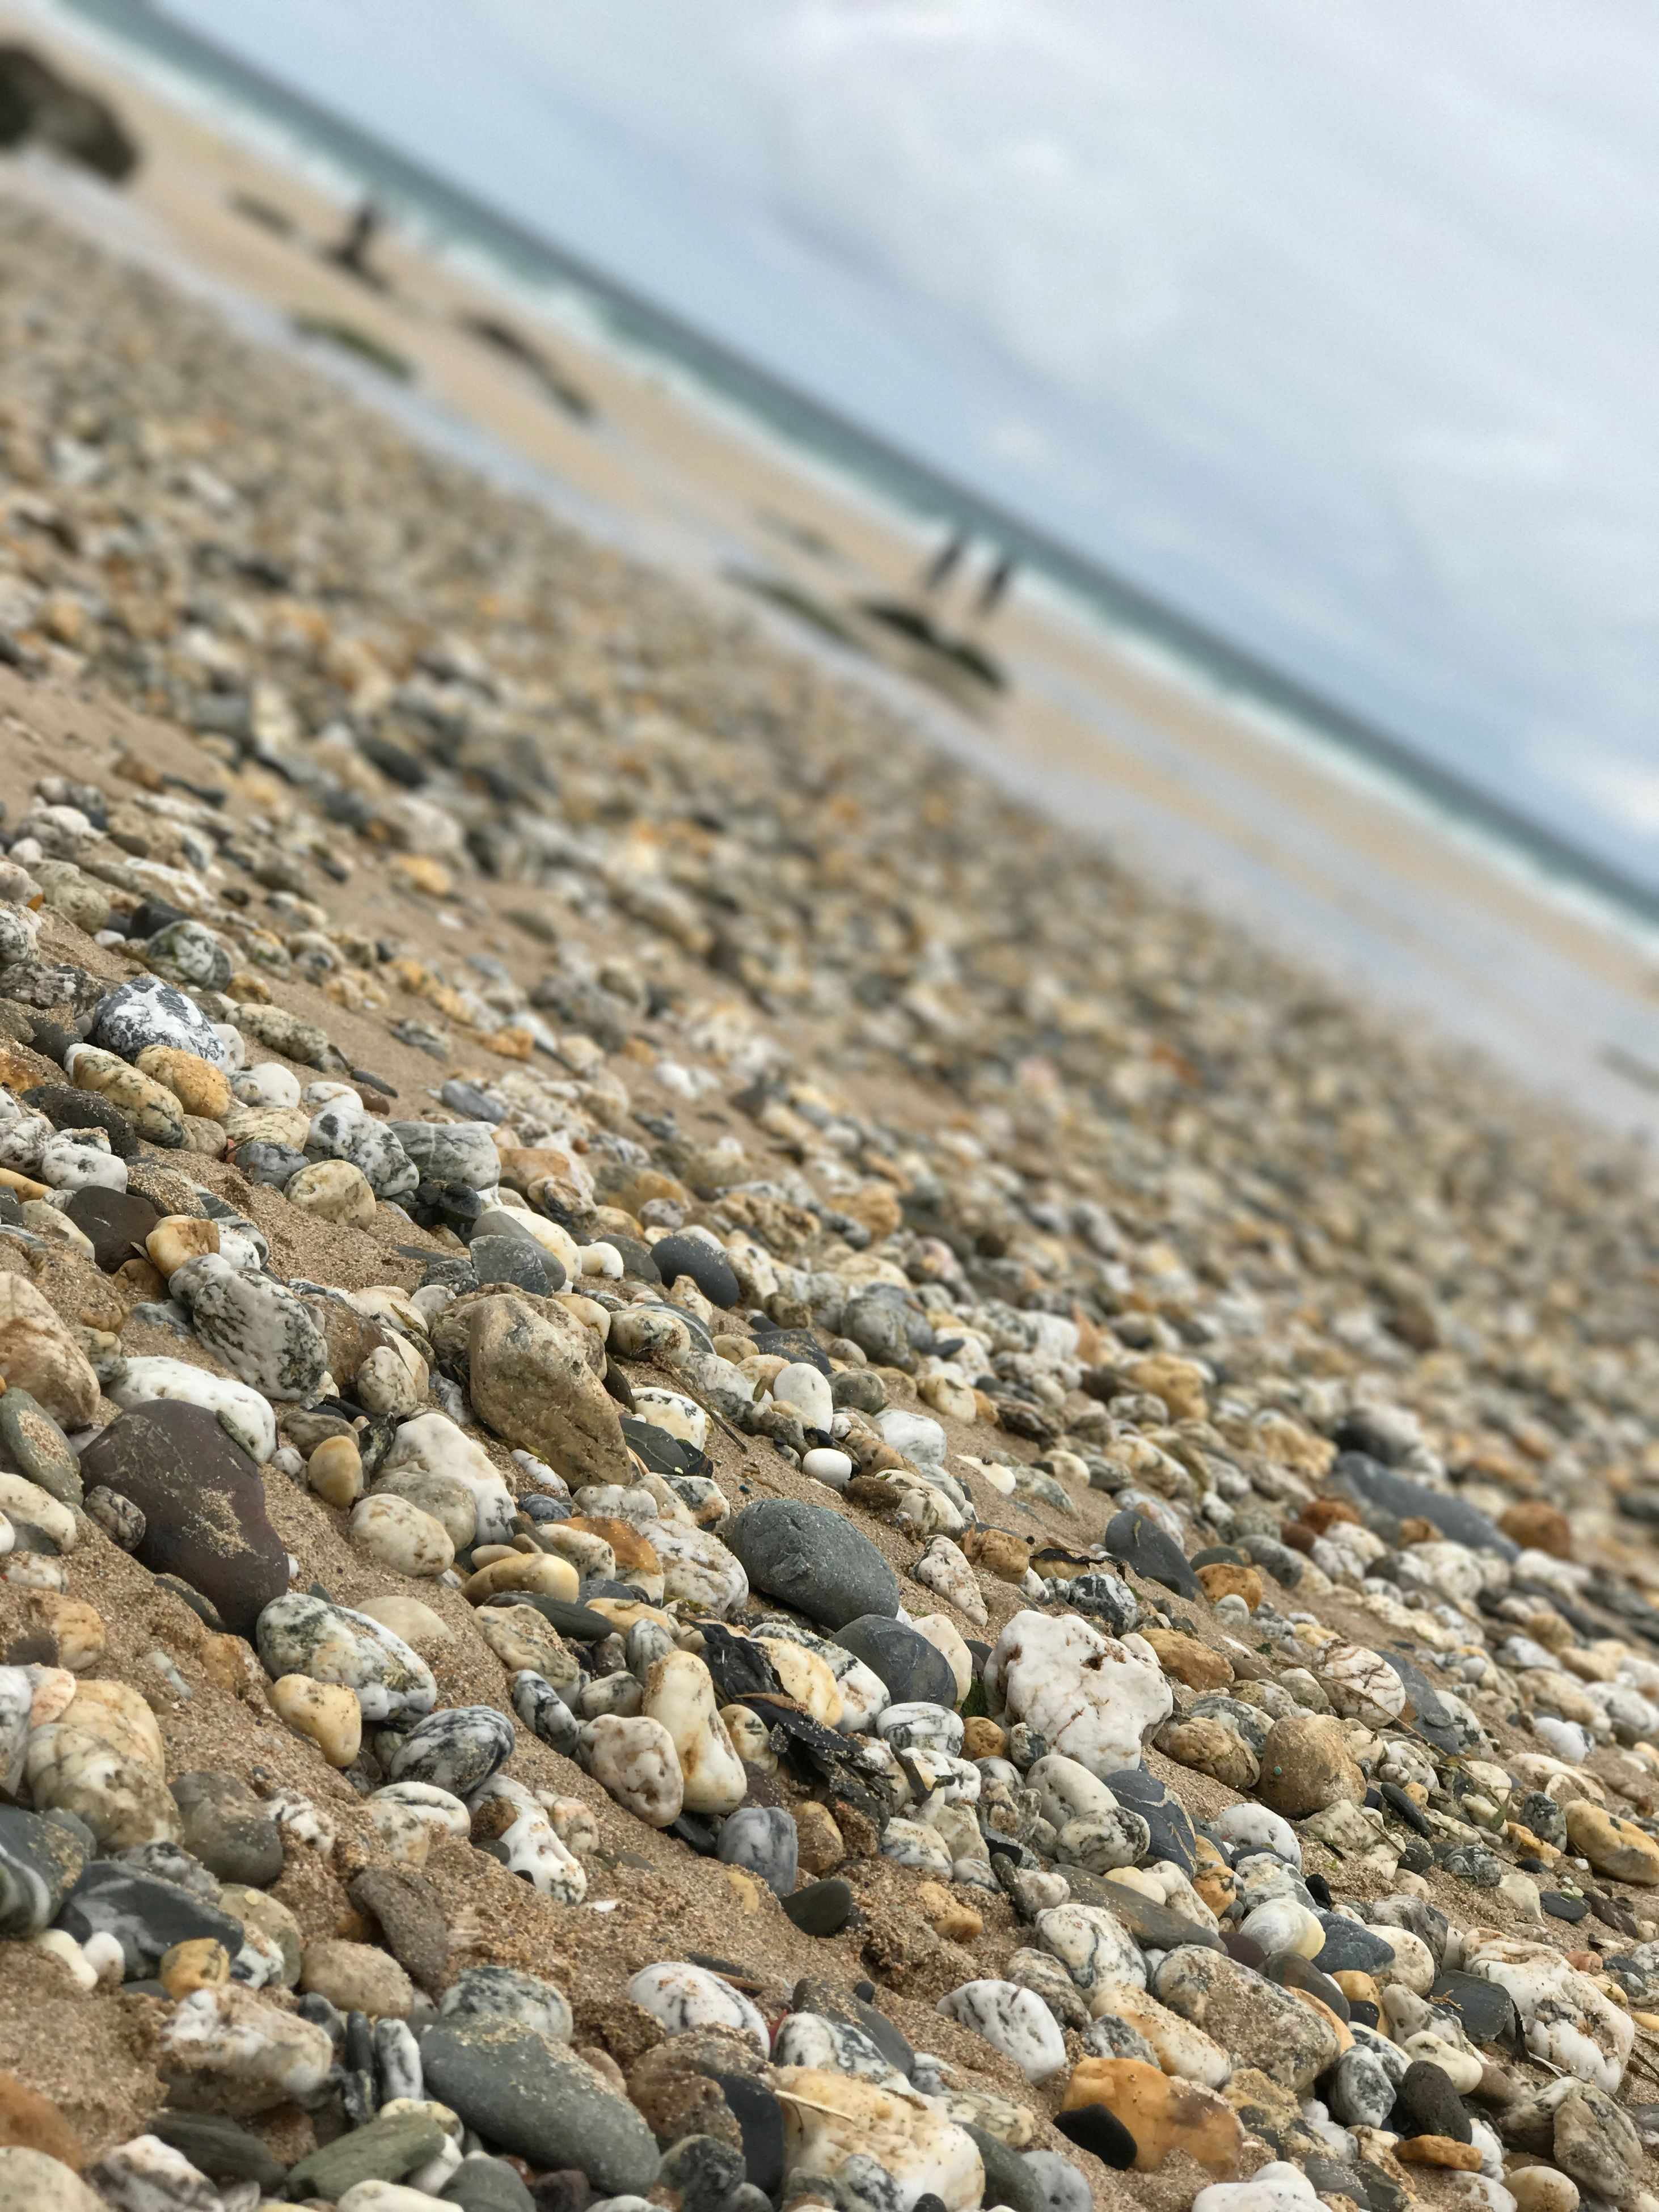 beach, sea, nature, water, sand, close-up, surface level, pebble, shore, no people, beauty in nature, tranquility, day, sky, pebble beach, outdoors, tranquil scene, scenics